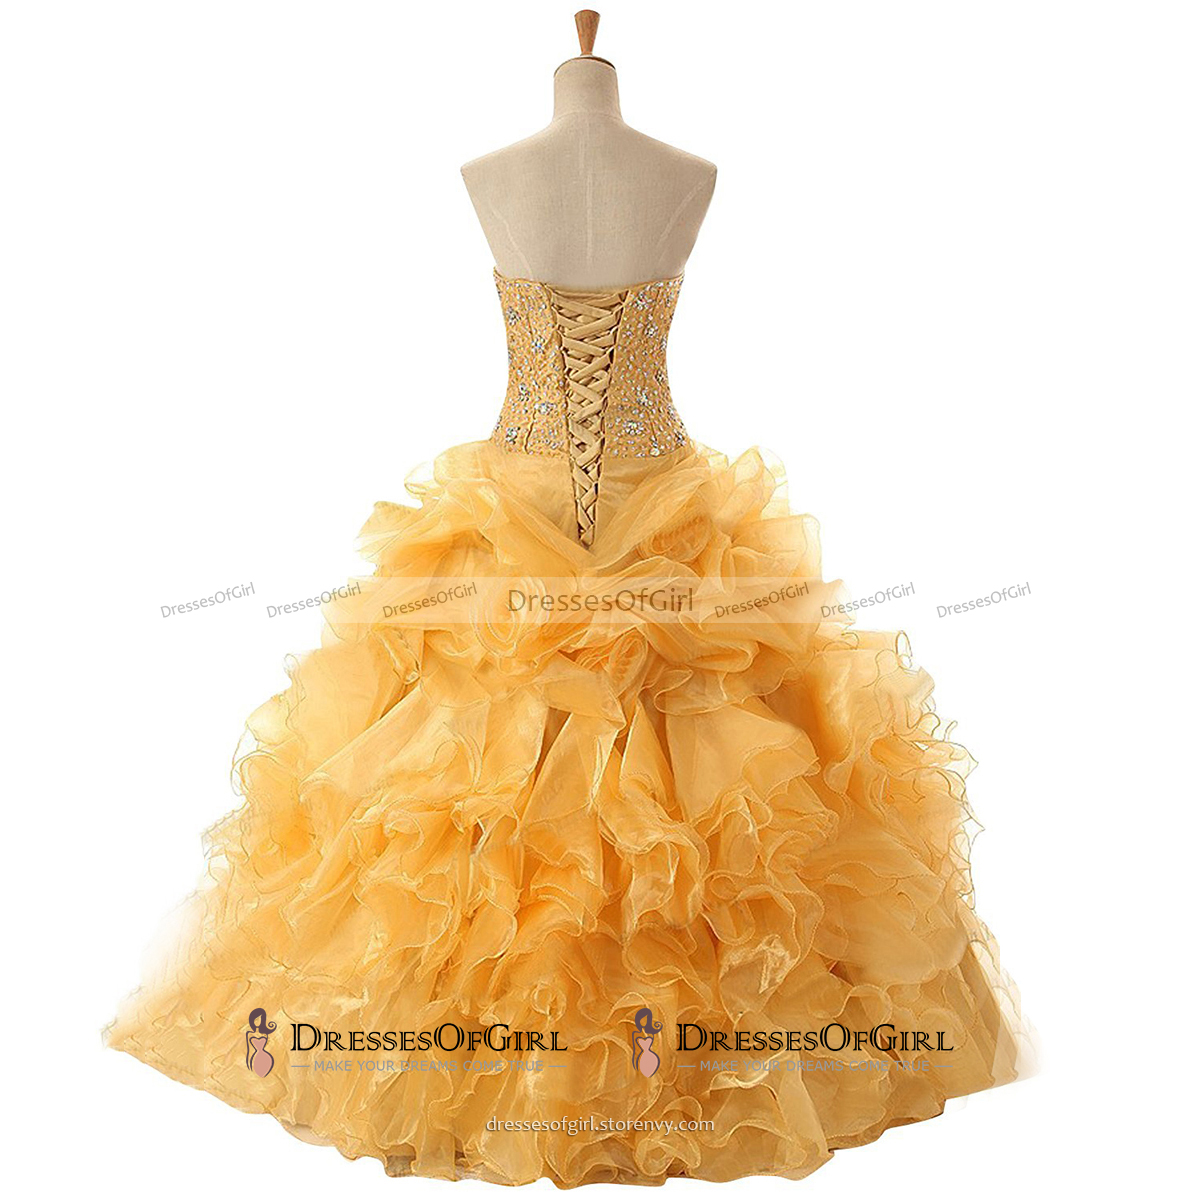 Luxury Johnny Mathis Yellow Roses On Her Gown Illustration - Images ...